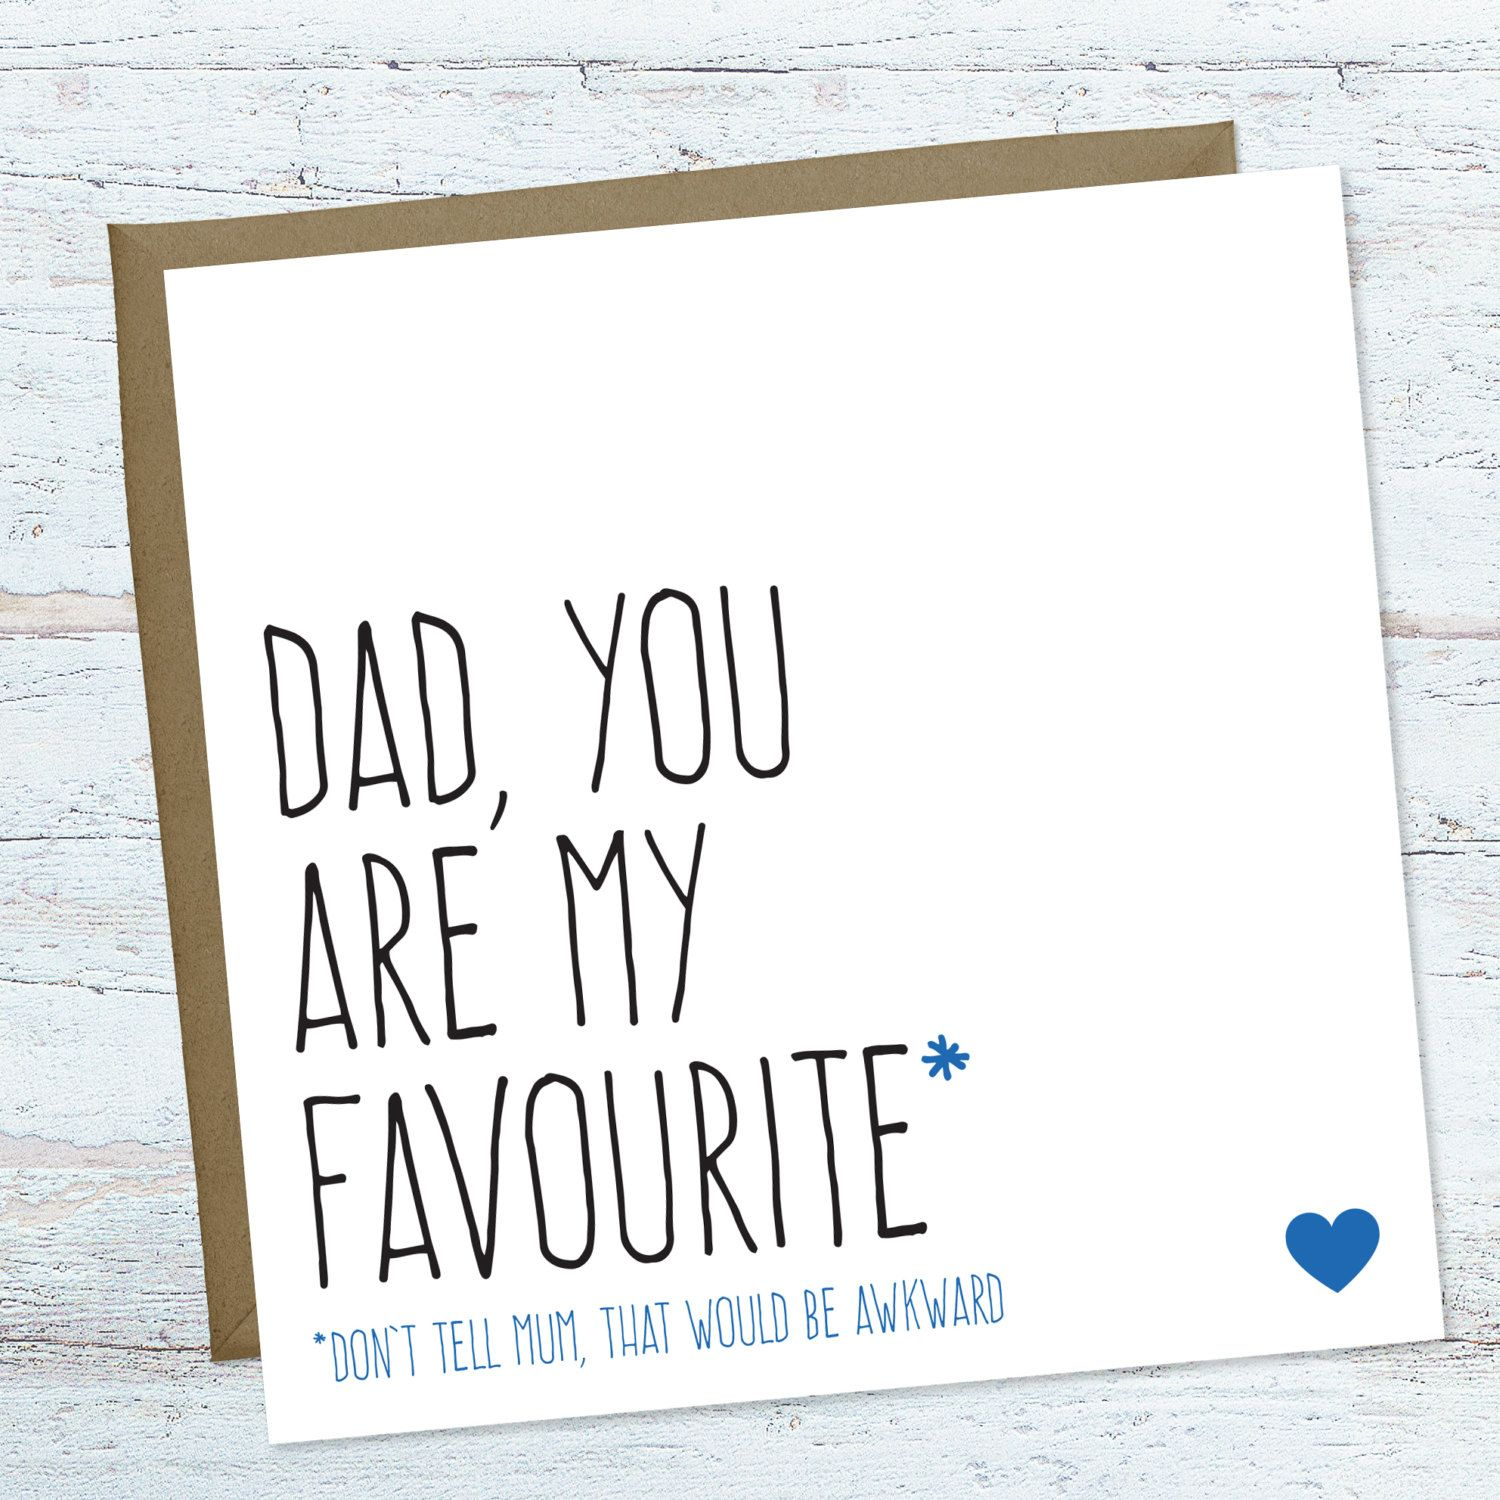 Fathers Day Card For Dad Funny Dad Birthday Cards Funny Father S Day Cards Dad You Re My Favourite Funny Dad Birthday Cards Dad Birthday Card Dad Cards